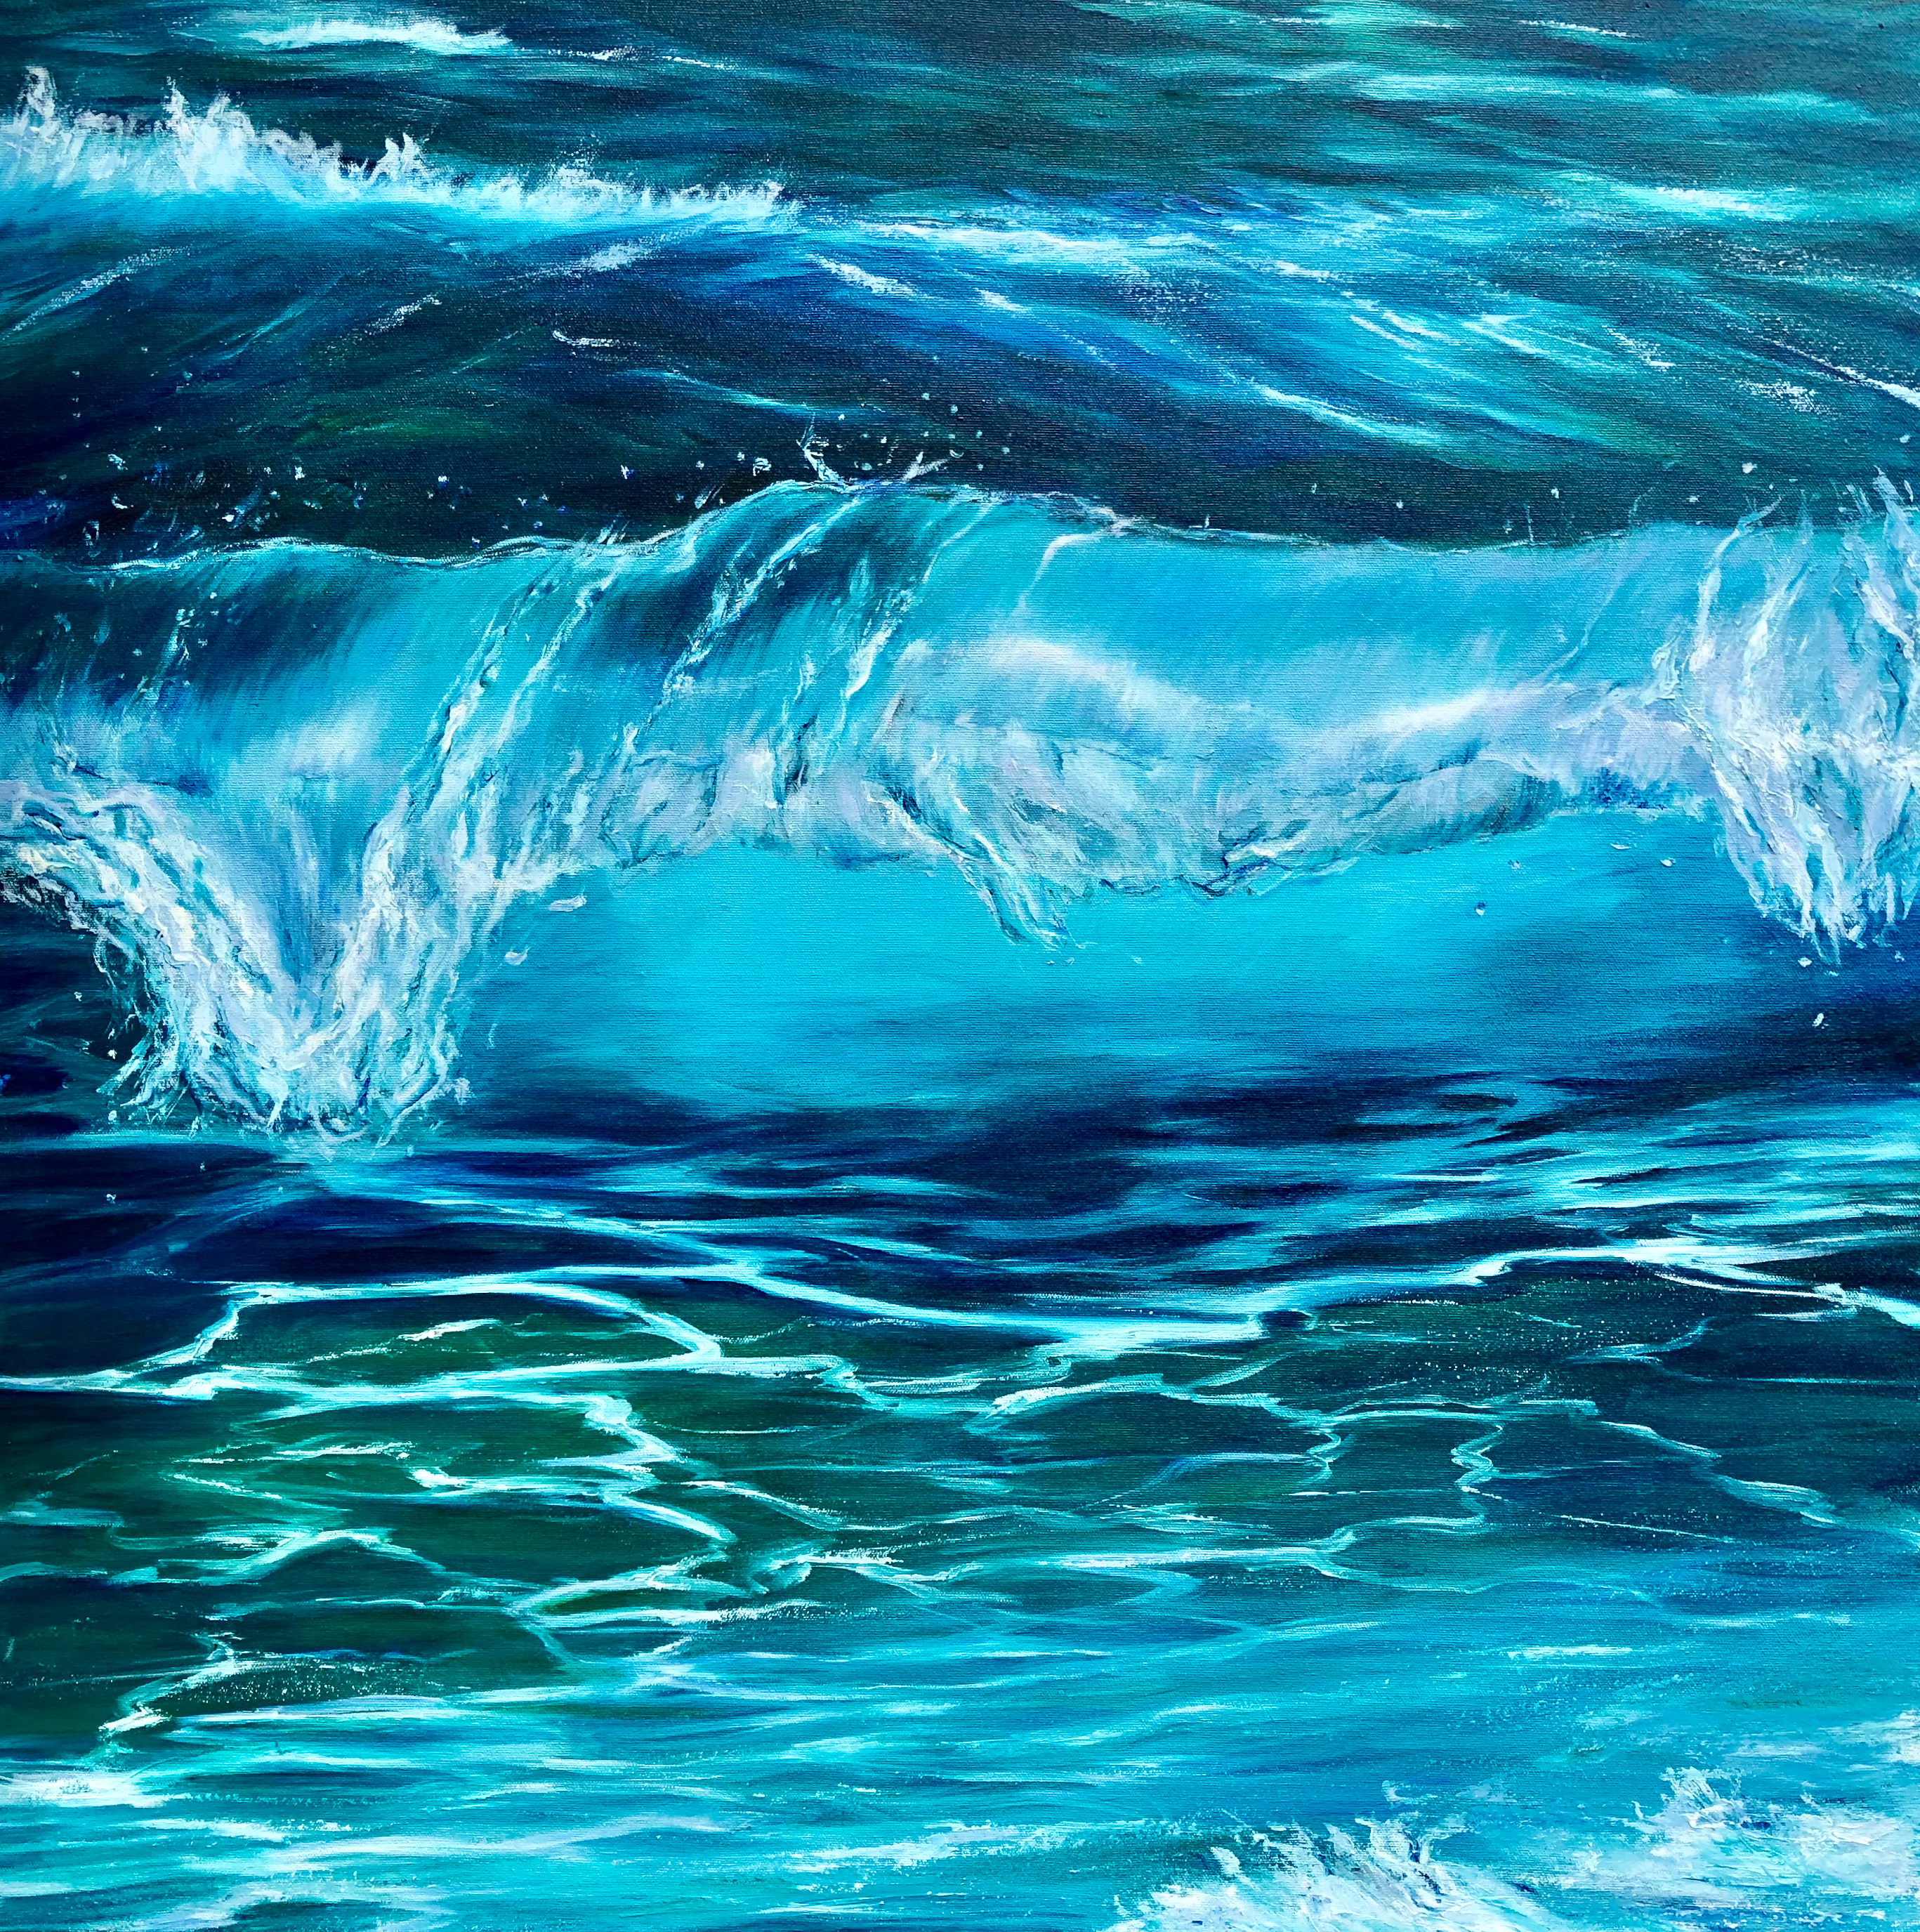 """Turquoise Wave II"" Oil on canvas. Width 80 x Height 80 cm or 31.5 x 31.5 inches. Signed.Framed in a white stained wooden frame. With a certificate of authenticity. Ready to hang"